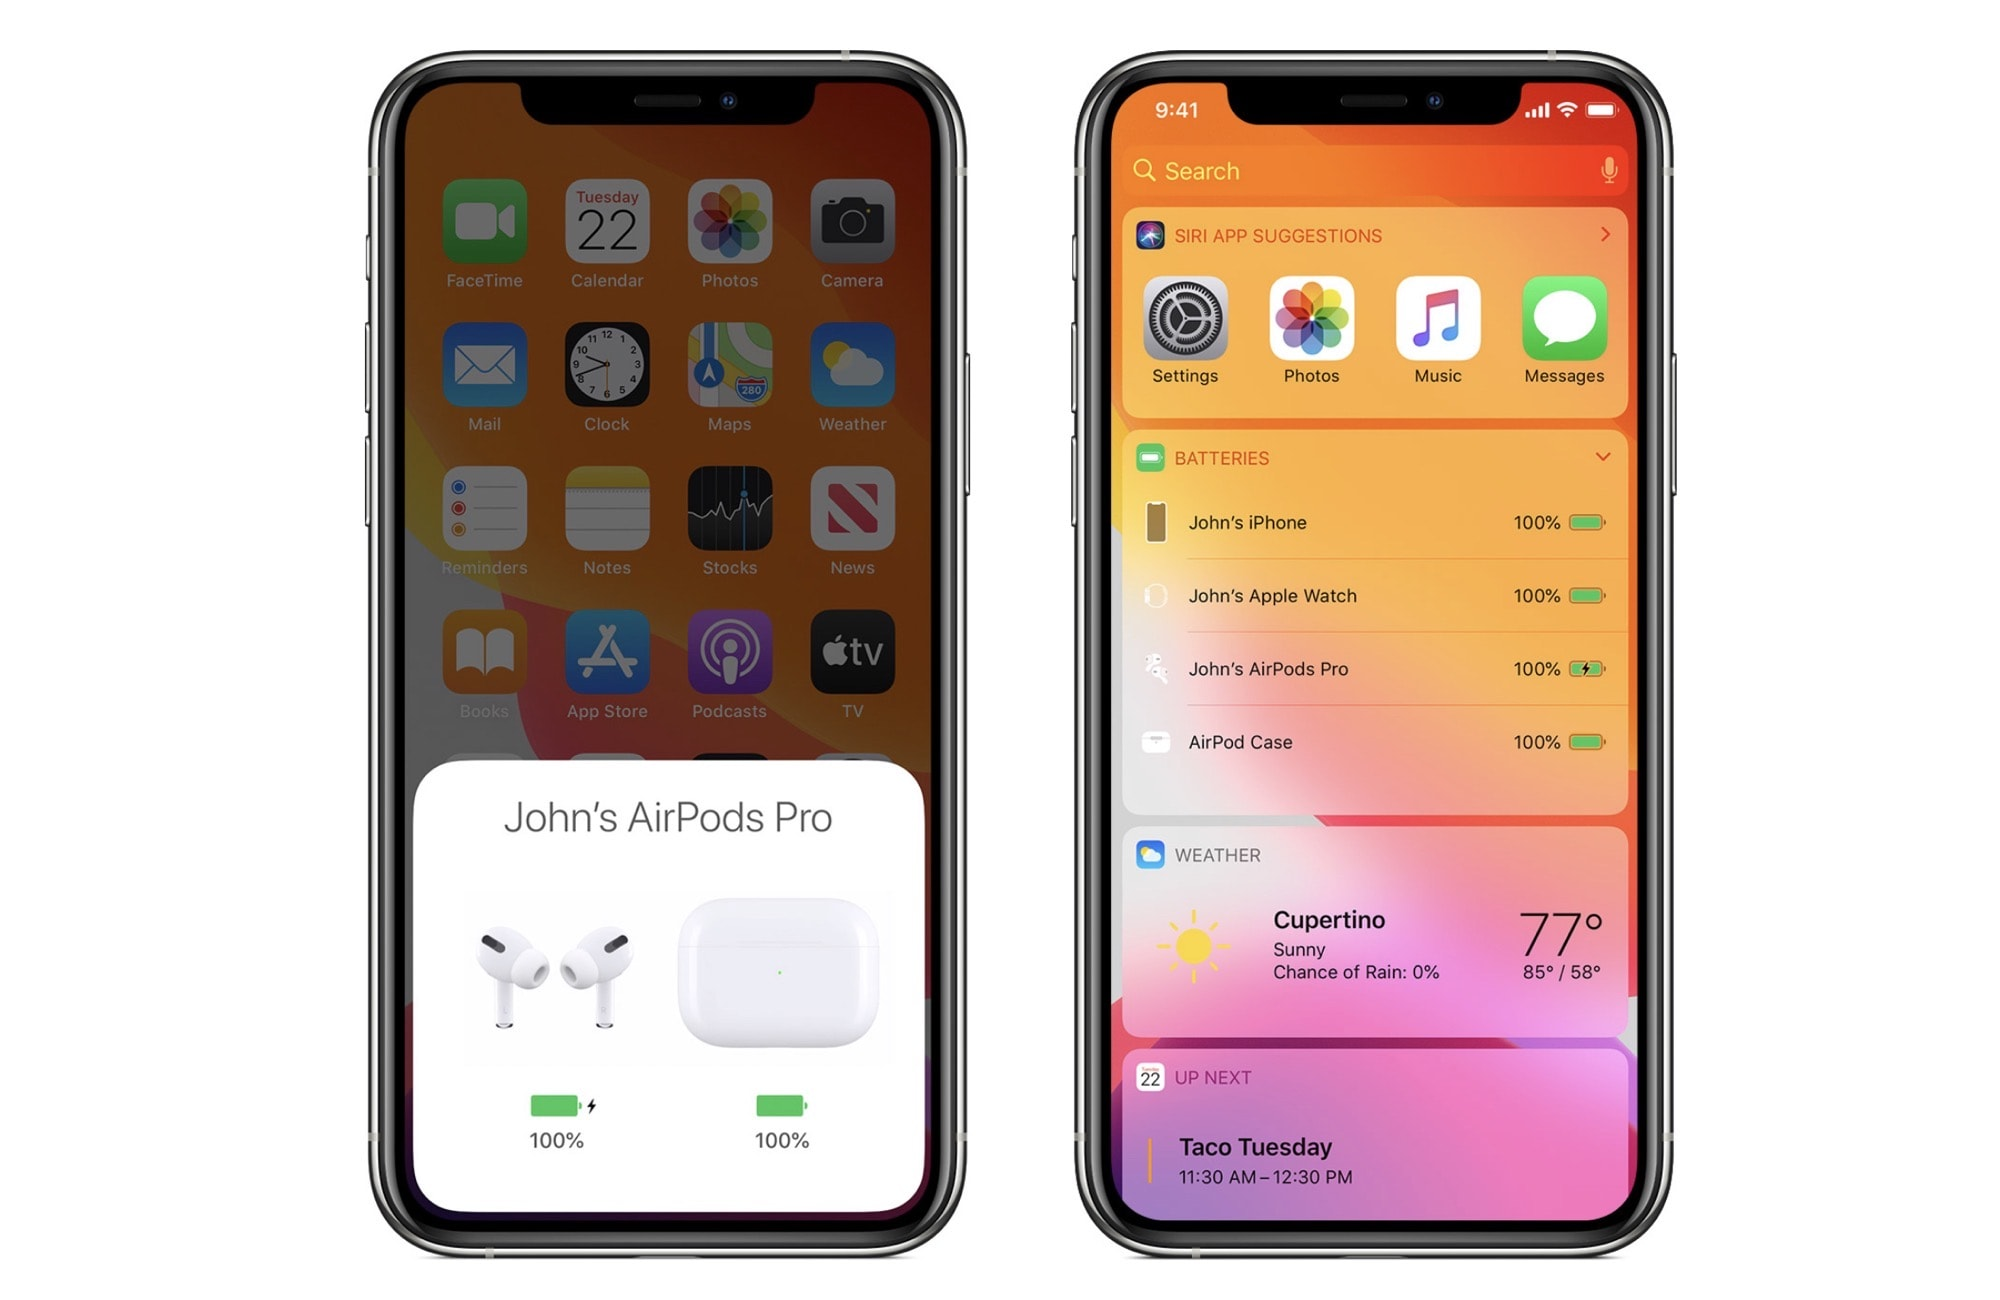 Check AirPods Pro battery levels from the iPhone.